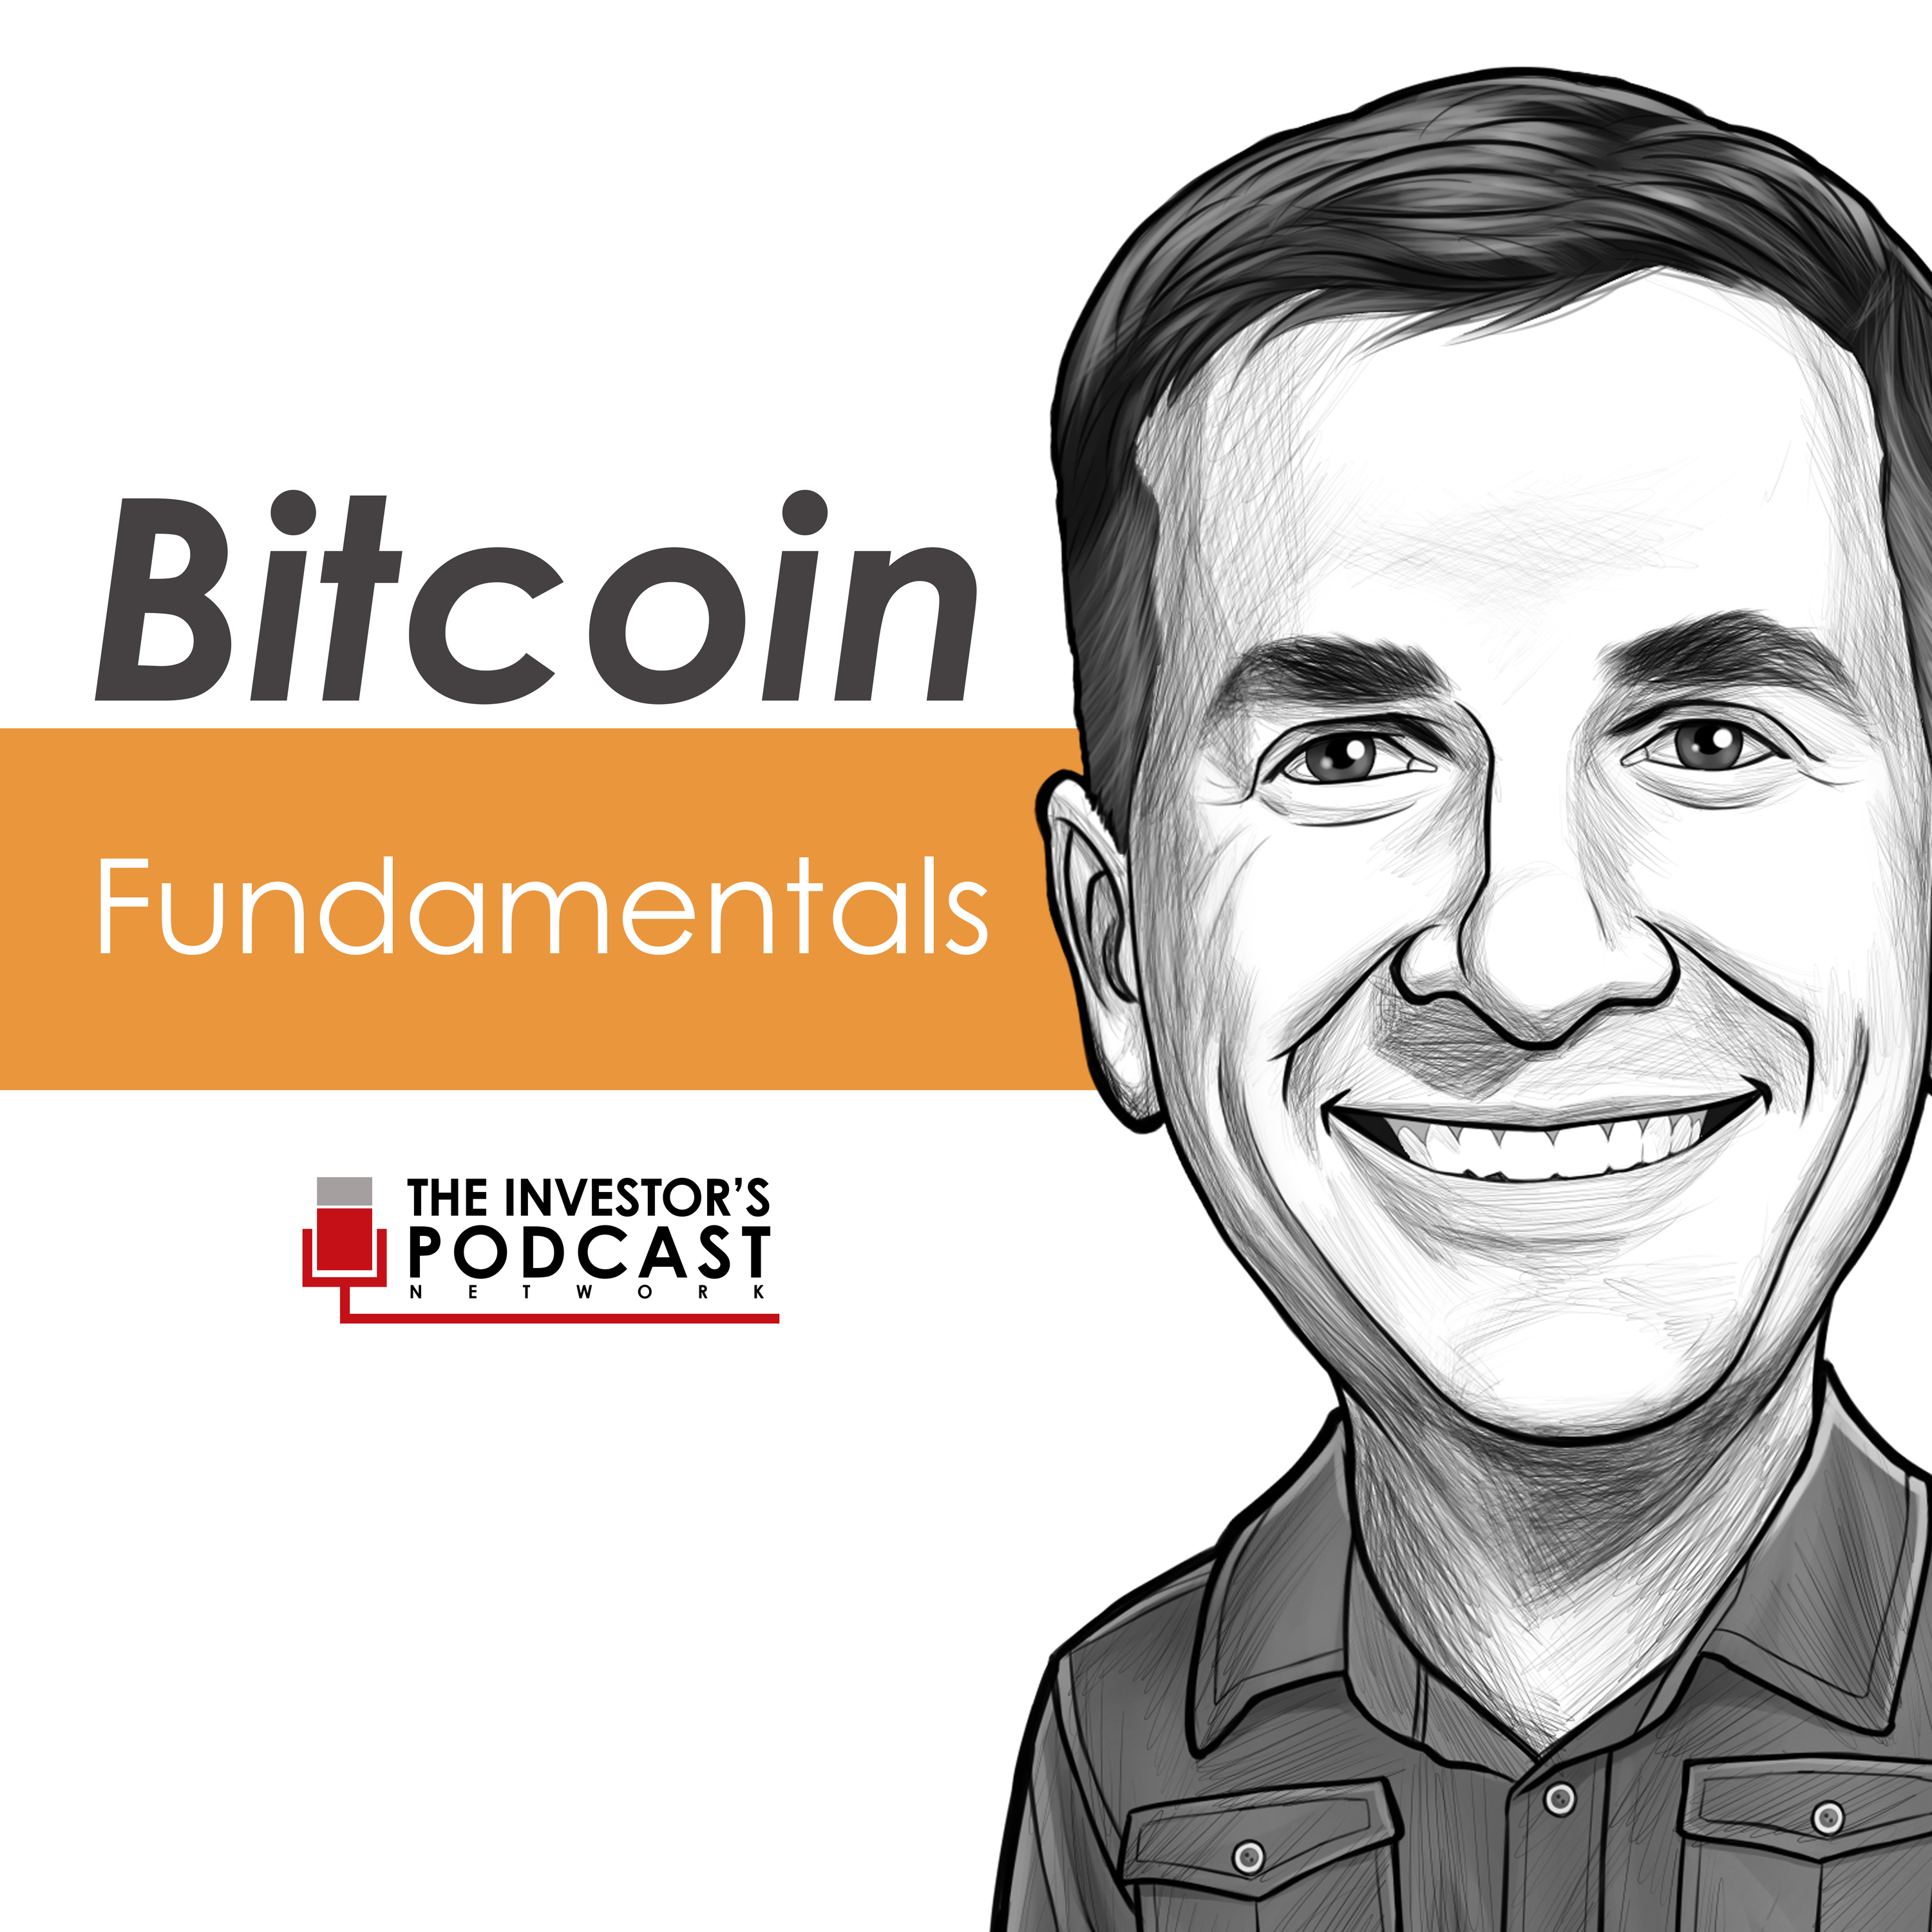 BTC014: Bitcoin Mining and Energy w/ Marty Bent and Harry Sudock (Bitcoin Podcast)